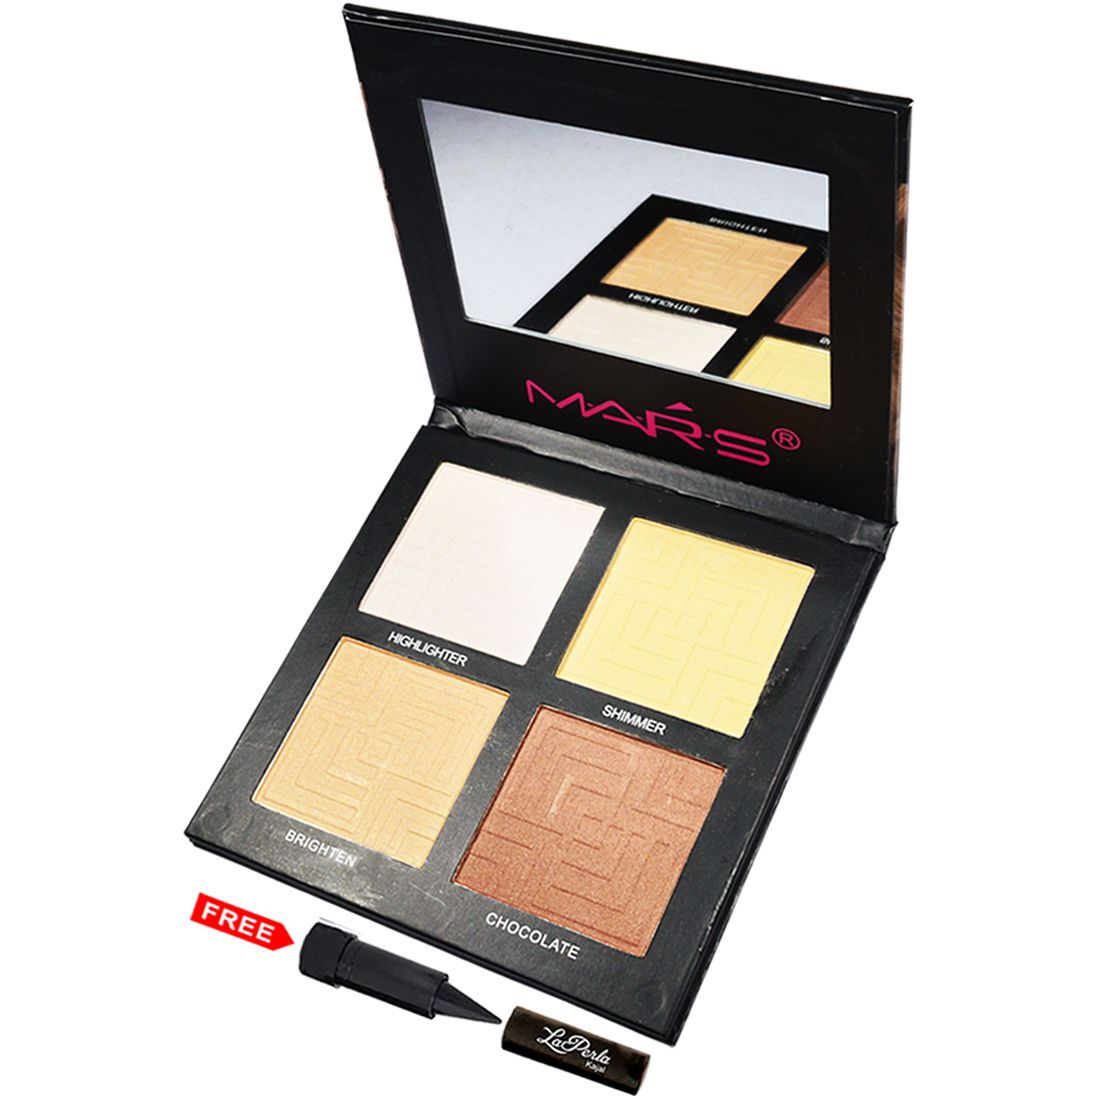 Mars Imported 3D 4in1 Palette-03 Highlighter Multicolor 16 gm